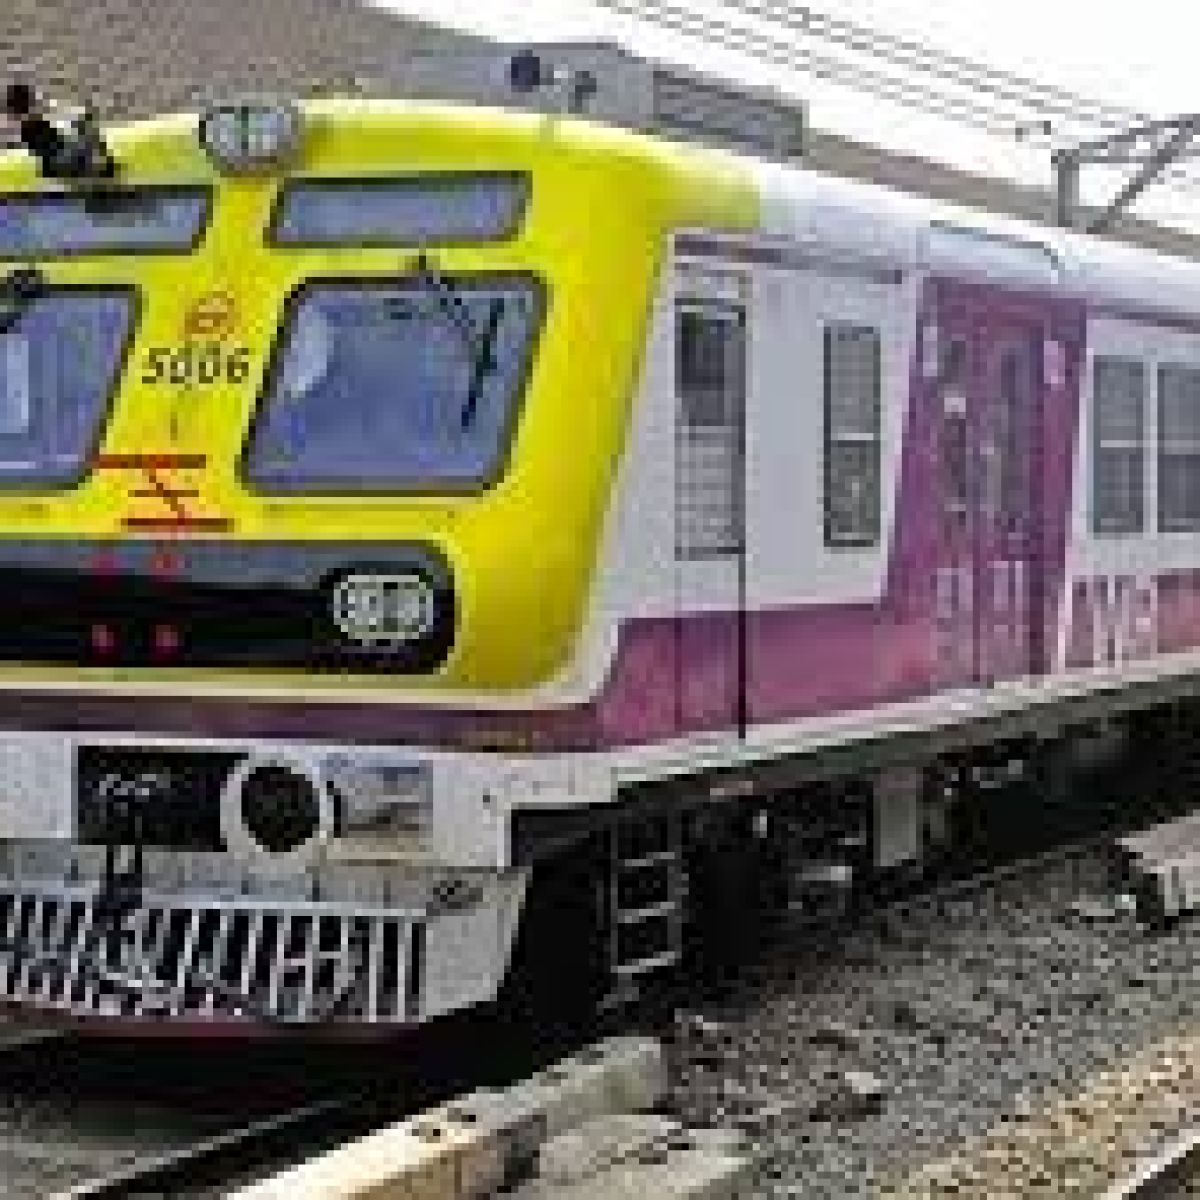 Class 10th and 12th re-exams: Students can travel by train